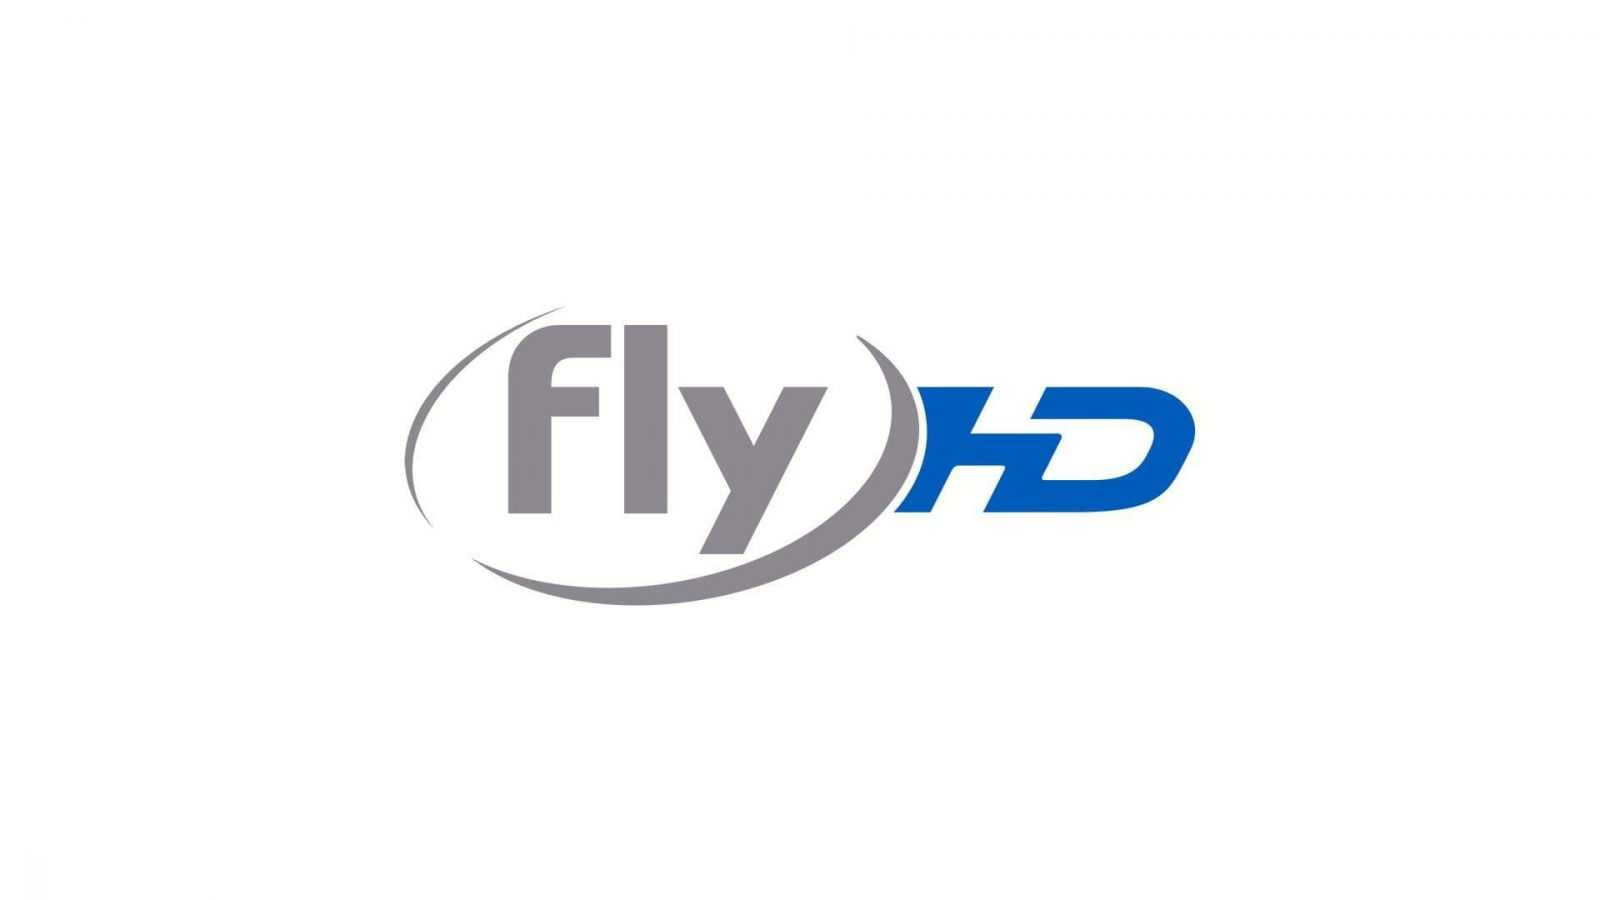 Arriva una nuova pay tv sul digitale terrestre: Fly HD